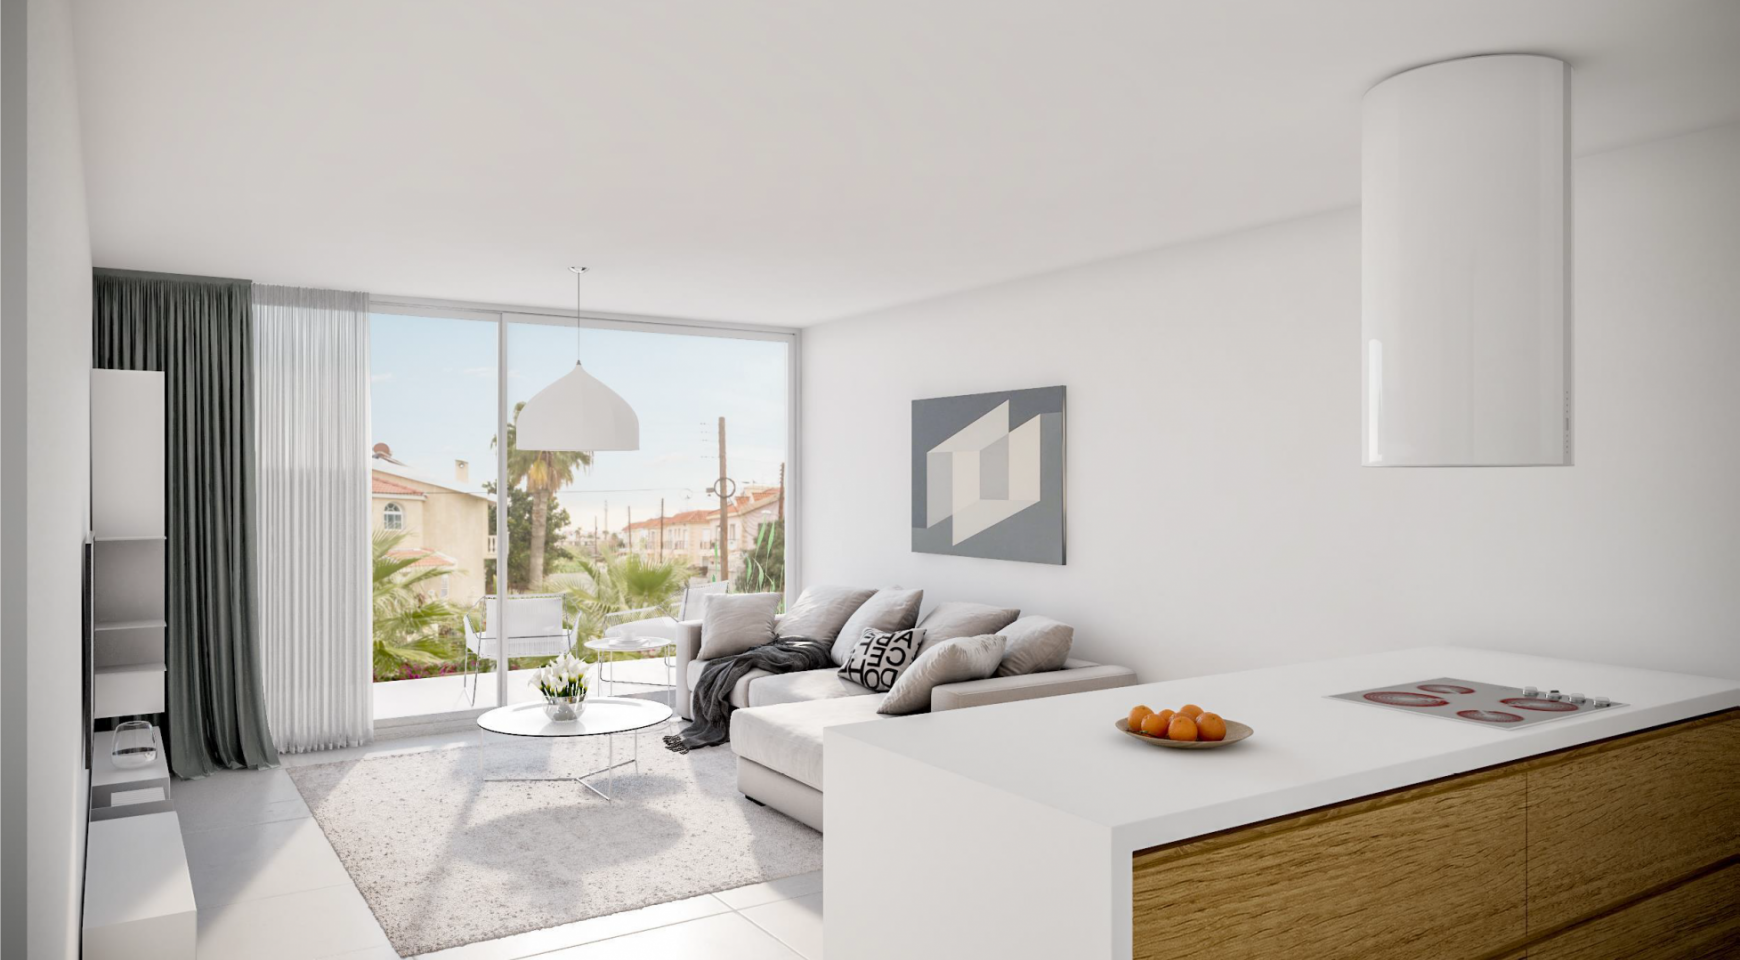 Modern Spacious 2 Bedroom Duplex in a New Complex  - 2